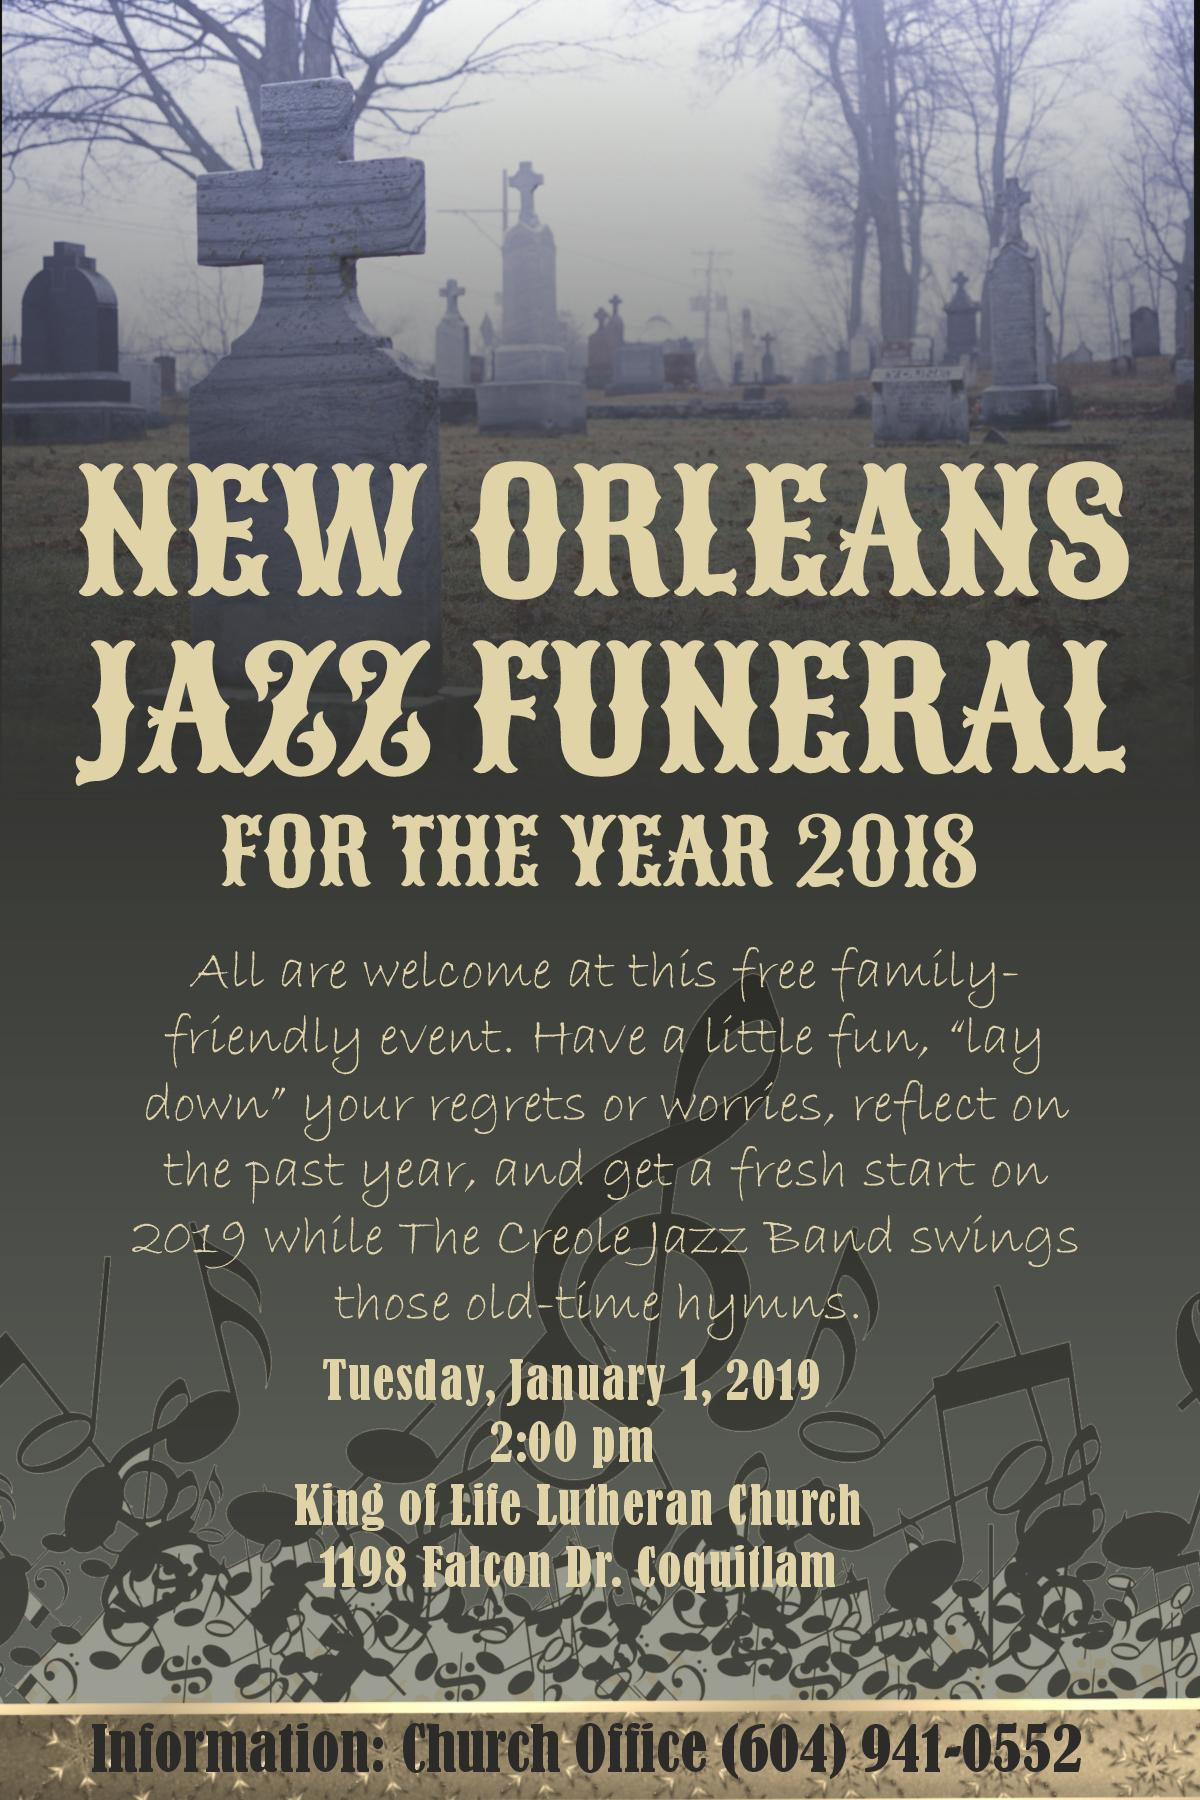 First come first served.  There is limited parking so please consider transit, walking or carpooling.   Bring crazy hats, parasols, tambourines whistlers etc